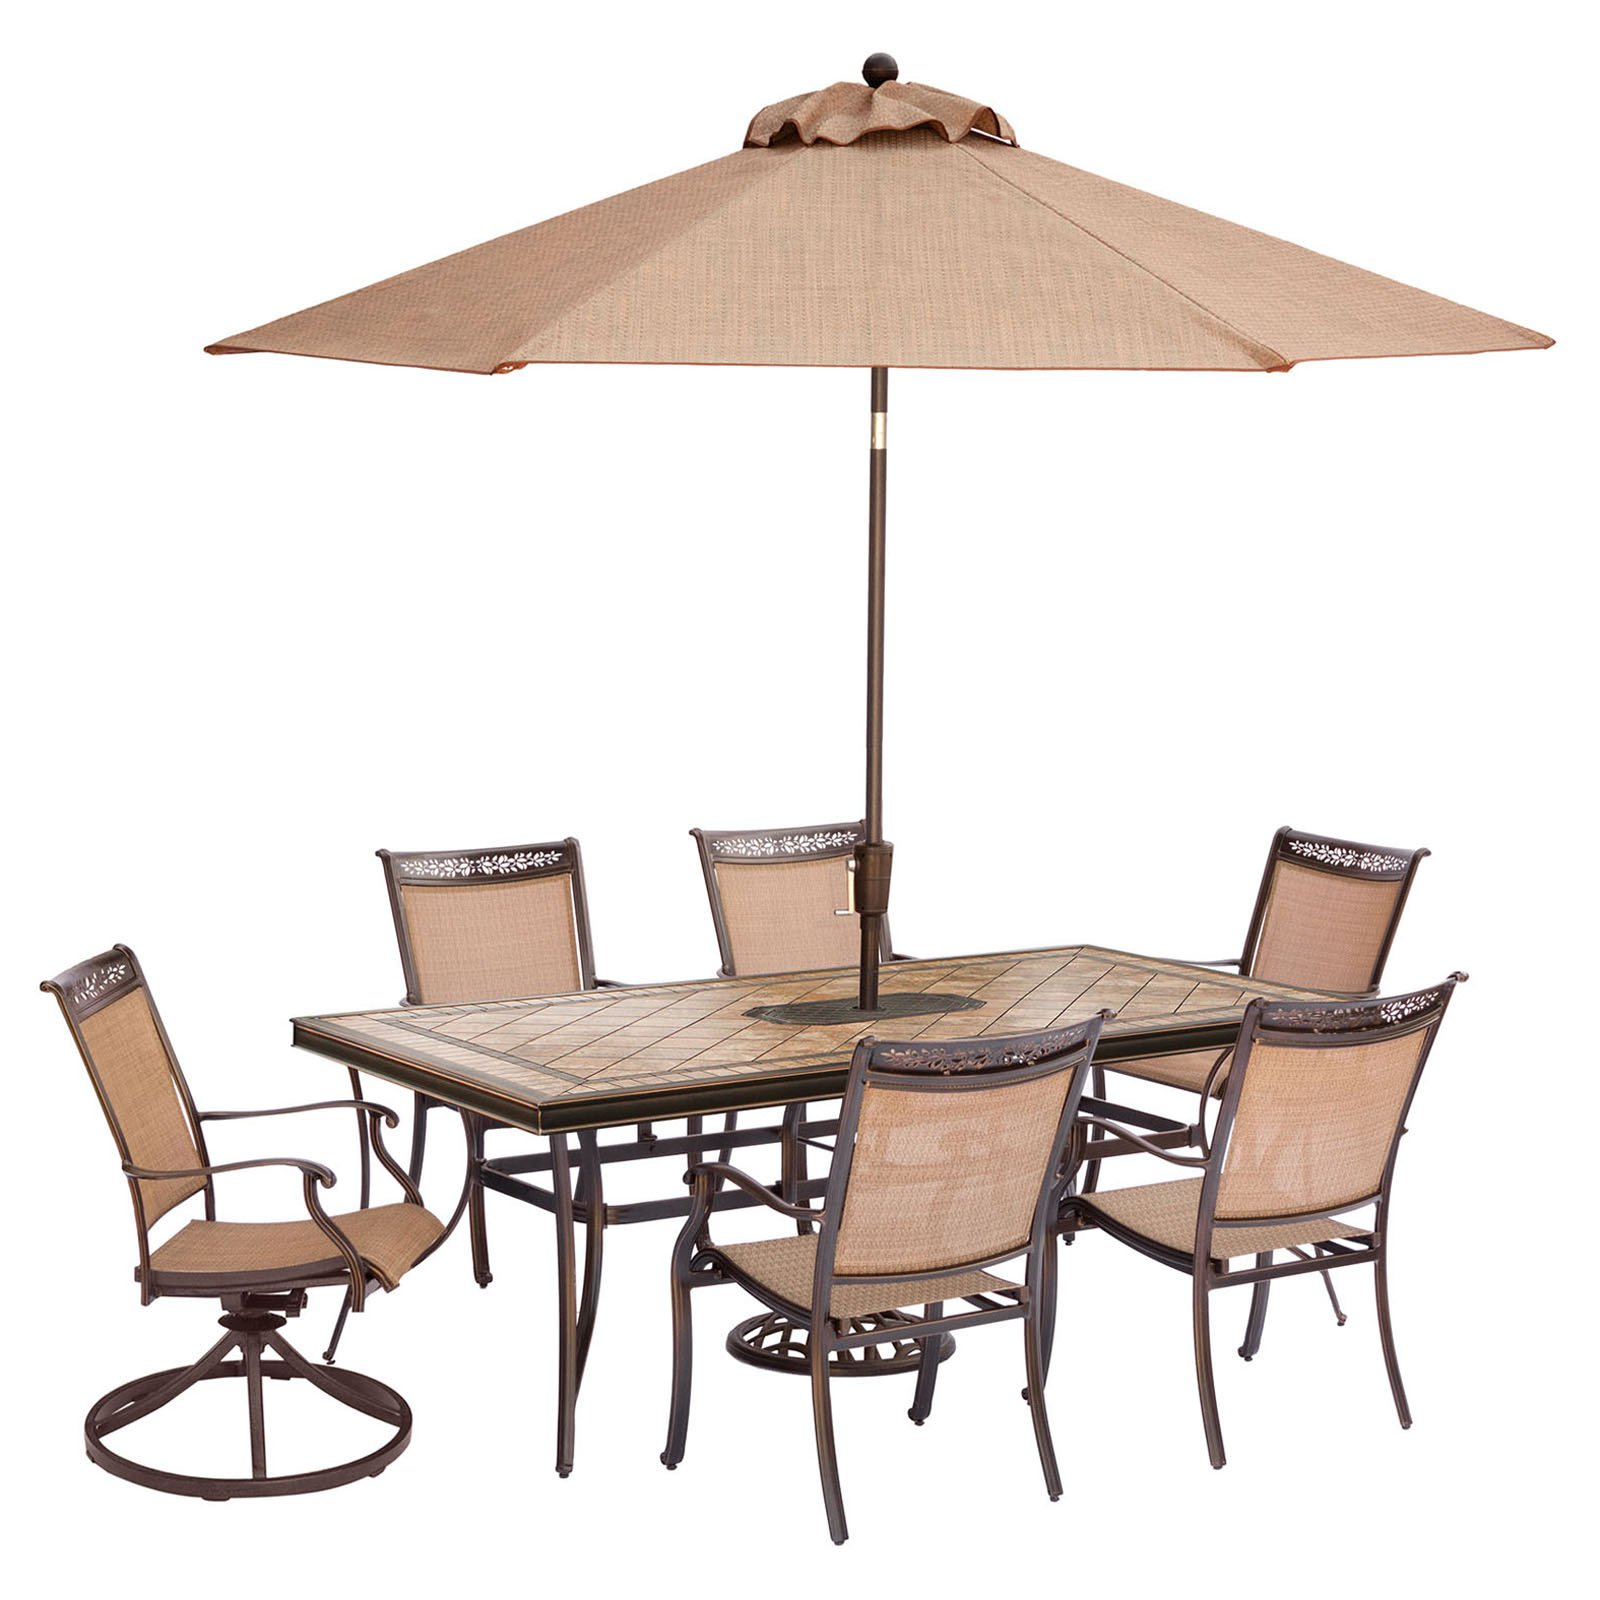 Outdoor Dining Sets With Swivel Rocker Chairs